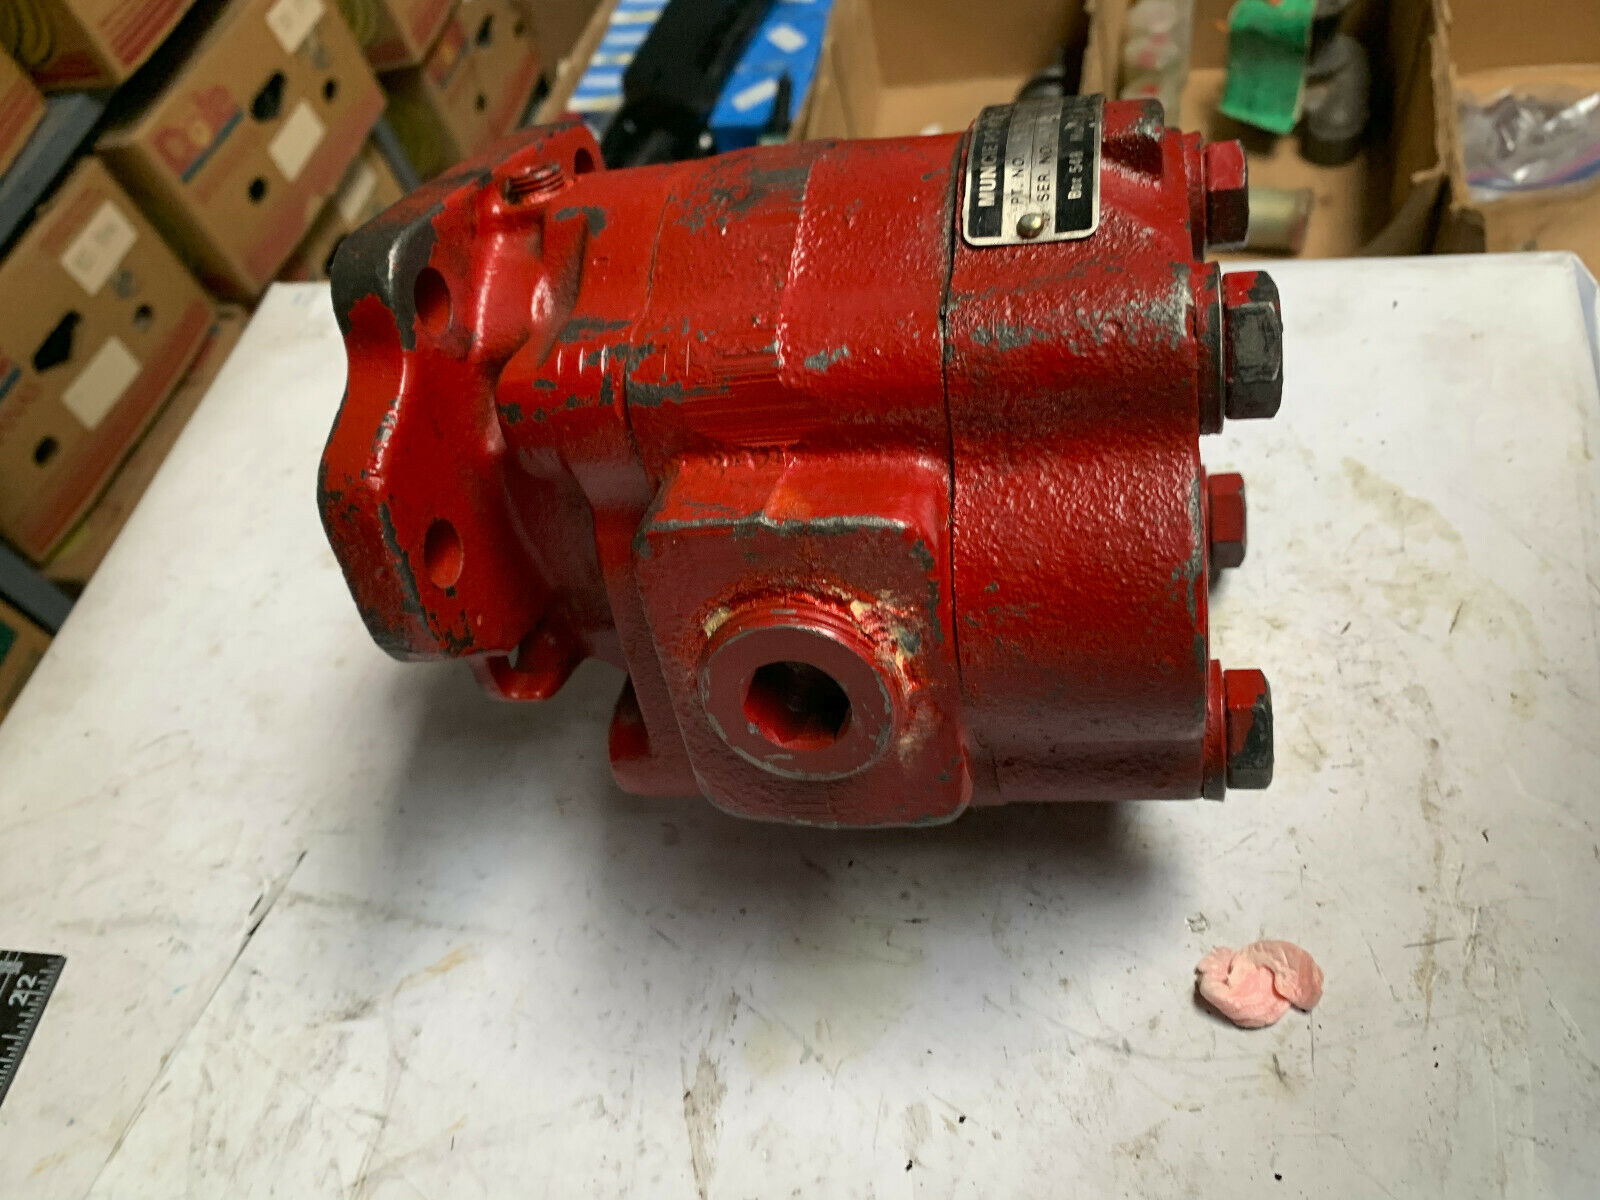 Muncie PL19-2BPBB Hydraulic Pump New 3000 psi 19 gpm flow rate at 1000 RPMS